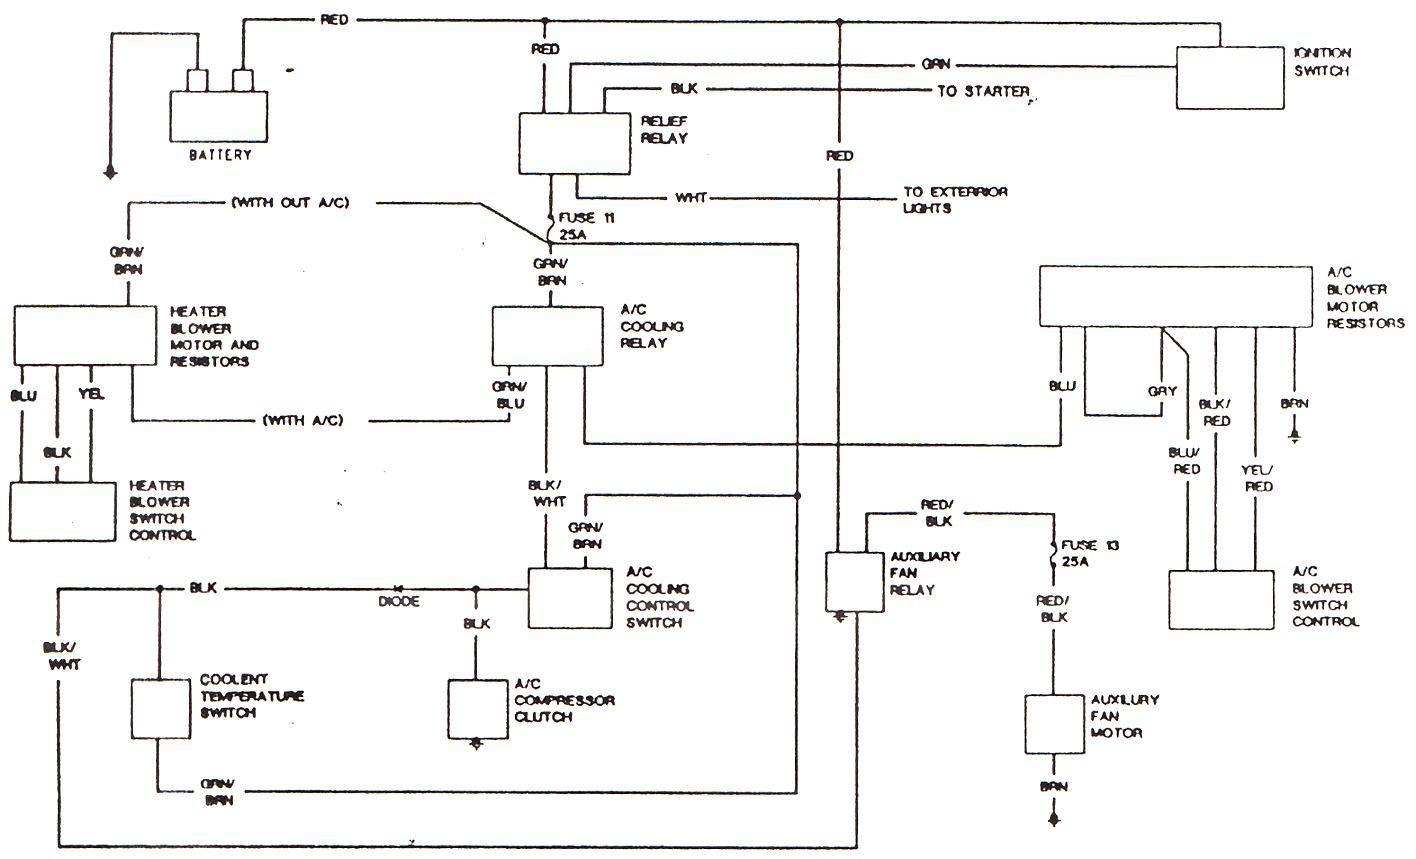 Cute Wiring Diagram Bmw 335i Images - Electrical Circuit Diagram ...